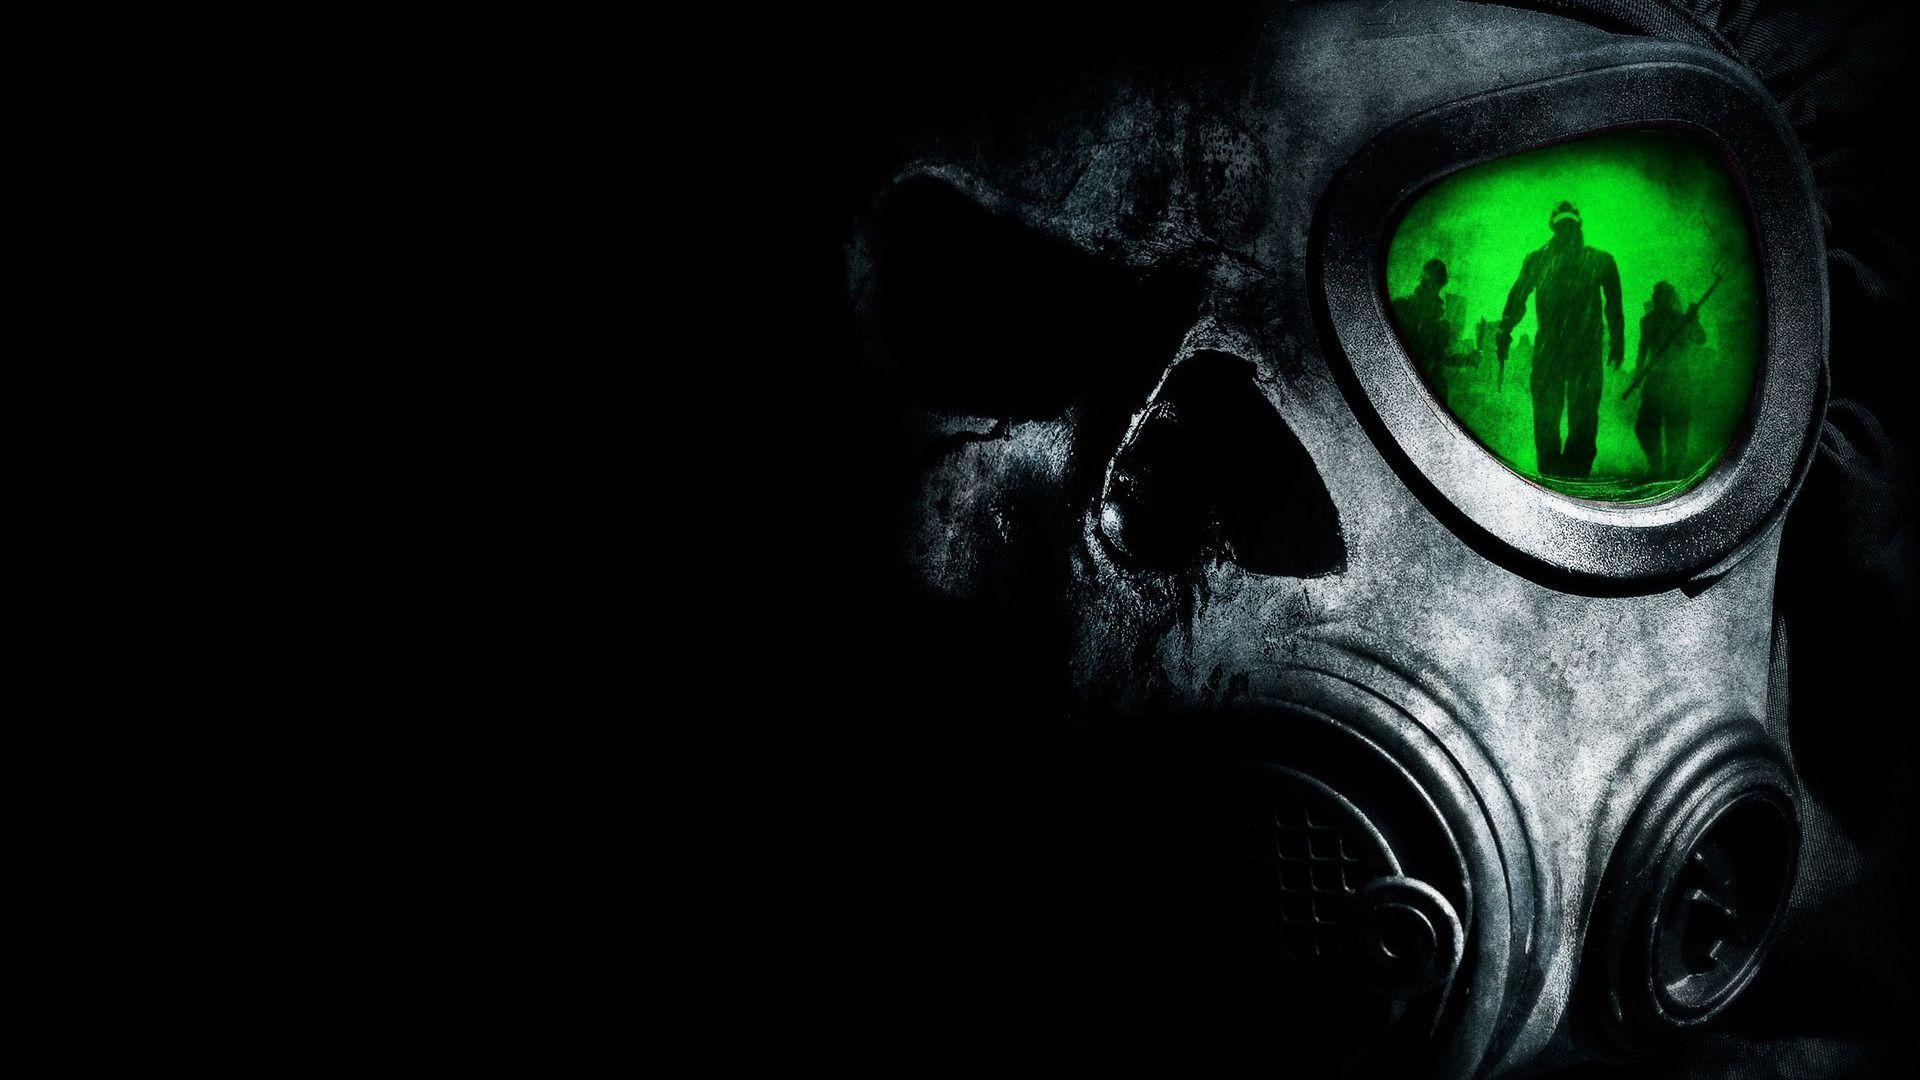 Wallpapers For > Black And Green Skull Wallpapers